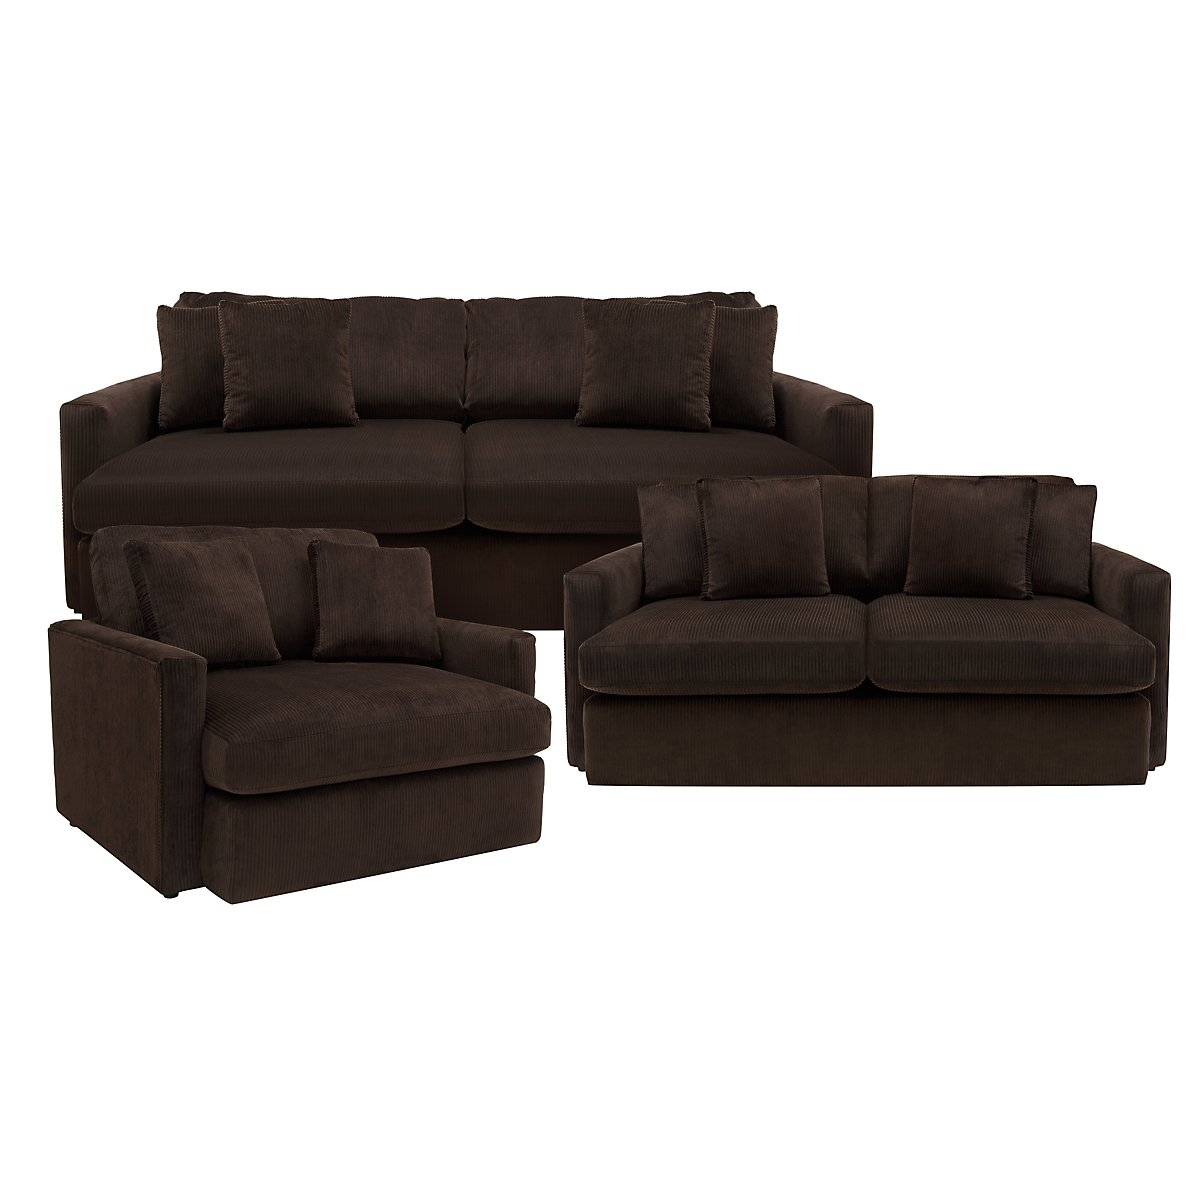 Dark brown microfiber sofa glasgow dark brown elephant for Sectional furniture